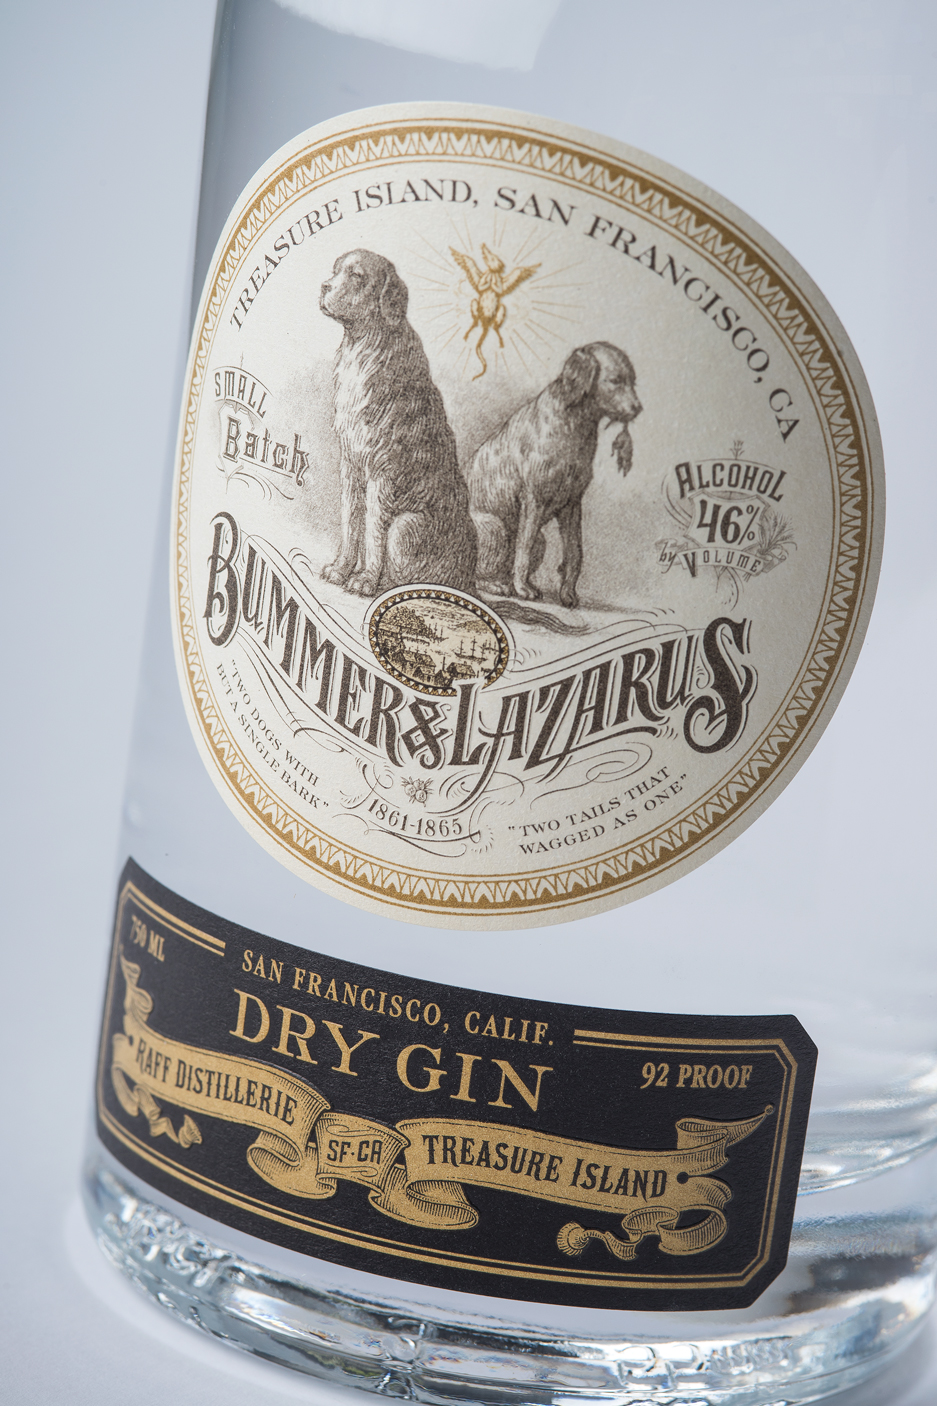 Bummer & Lazarus Gin Package Design by Tim Gatto for Auston Design Group